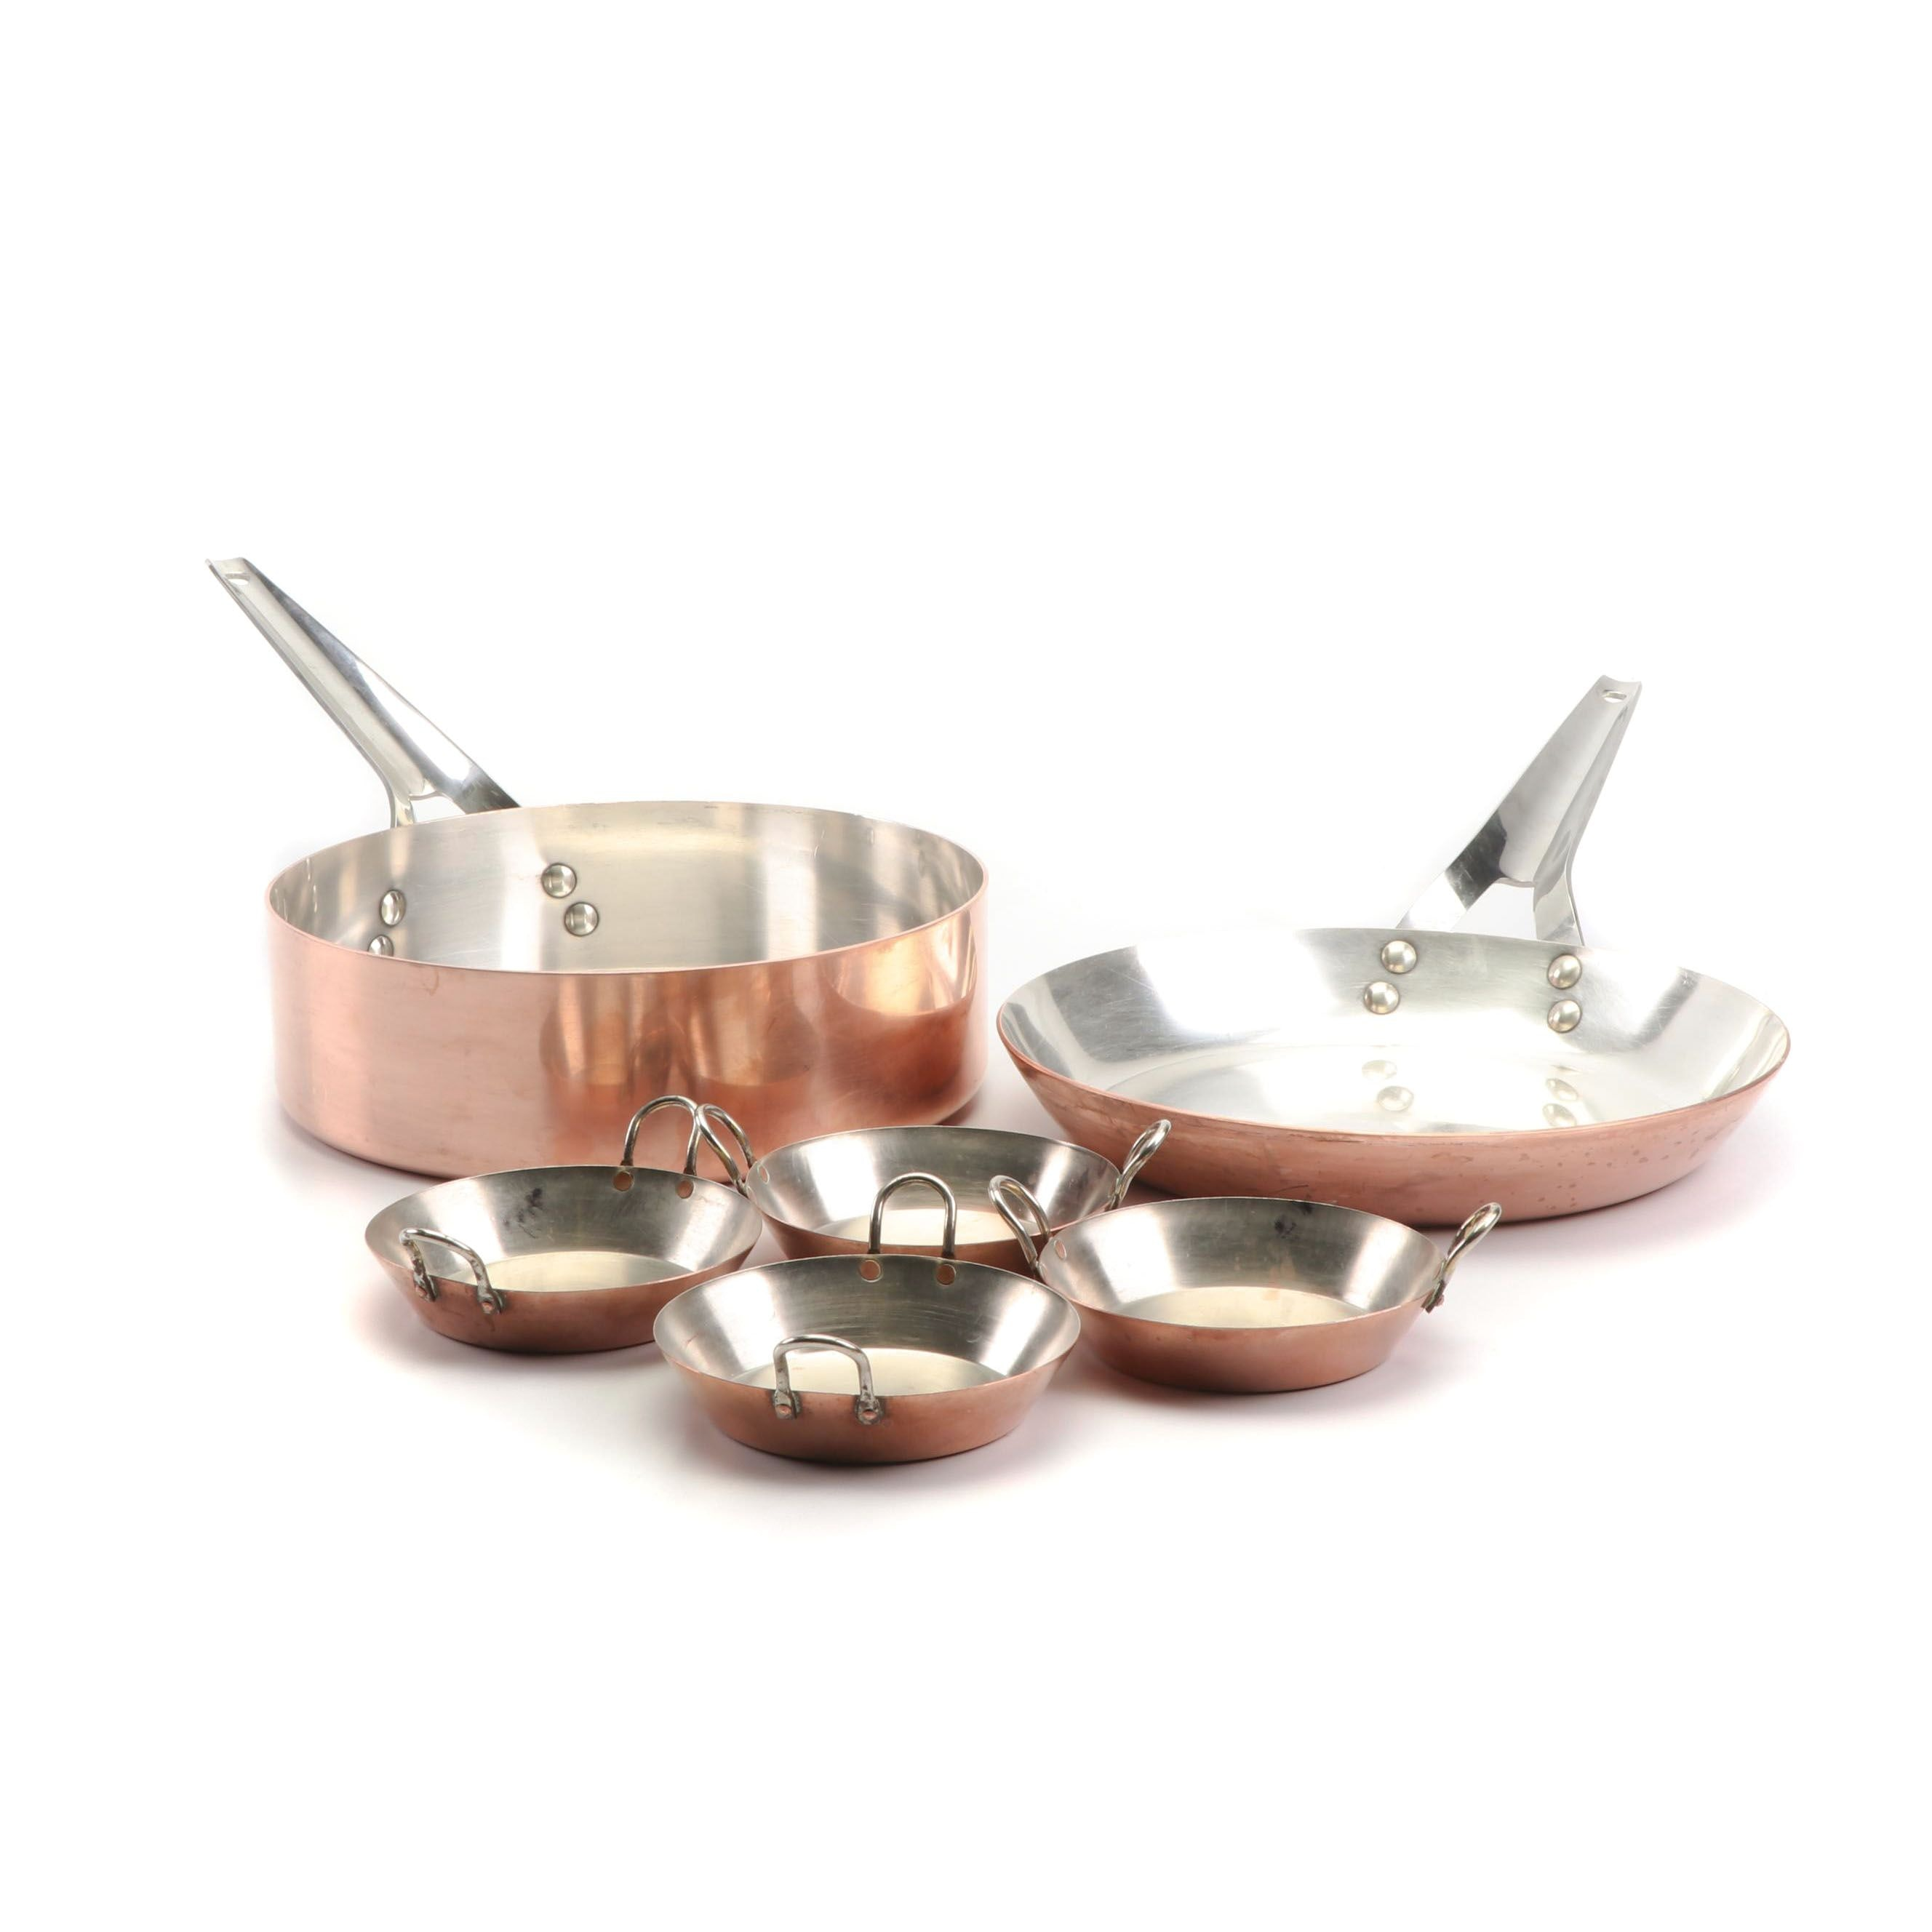 Georg Jensen Copper Cookware and More